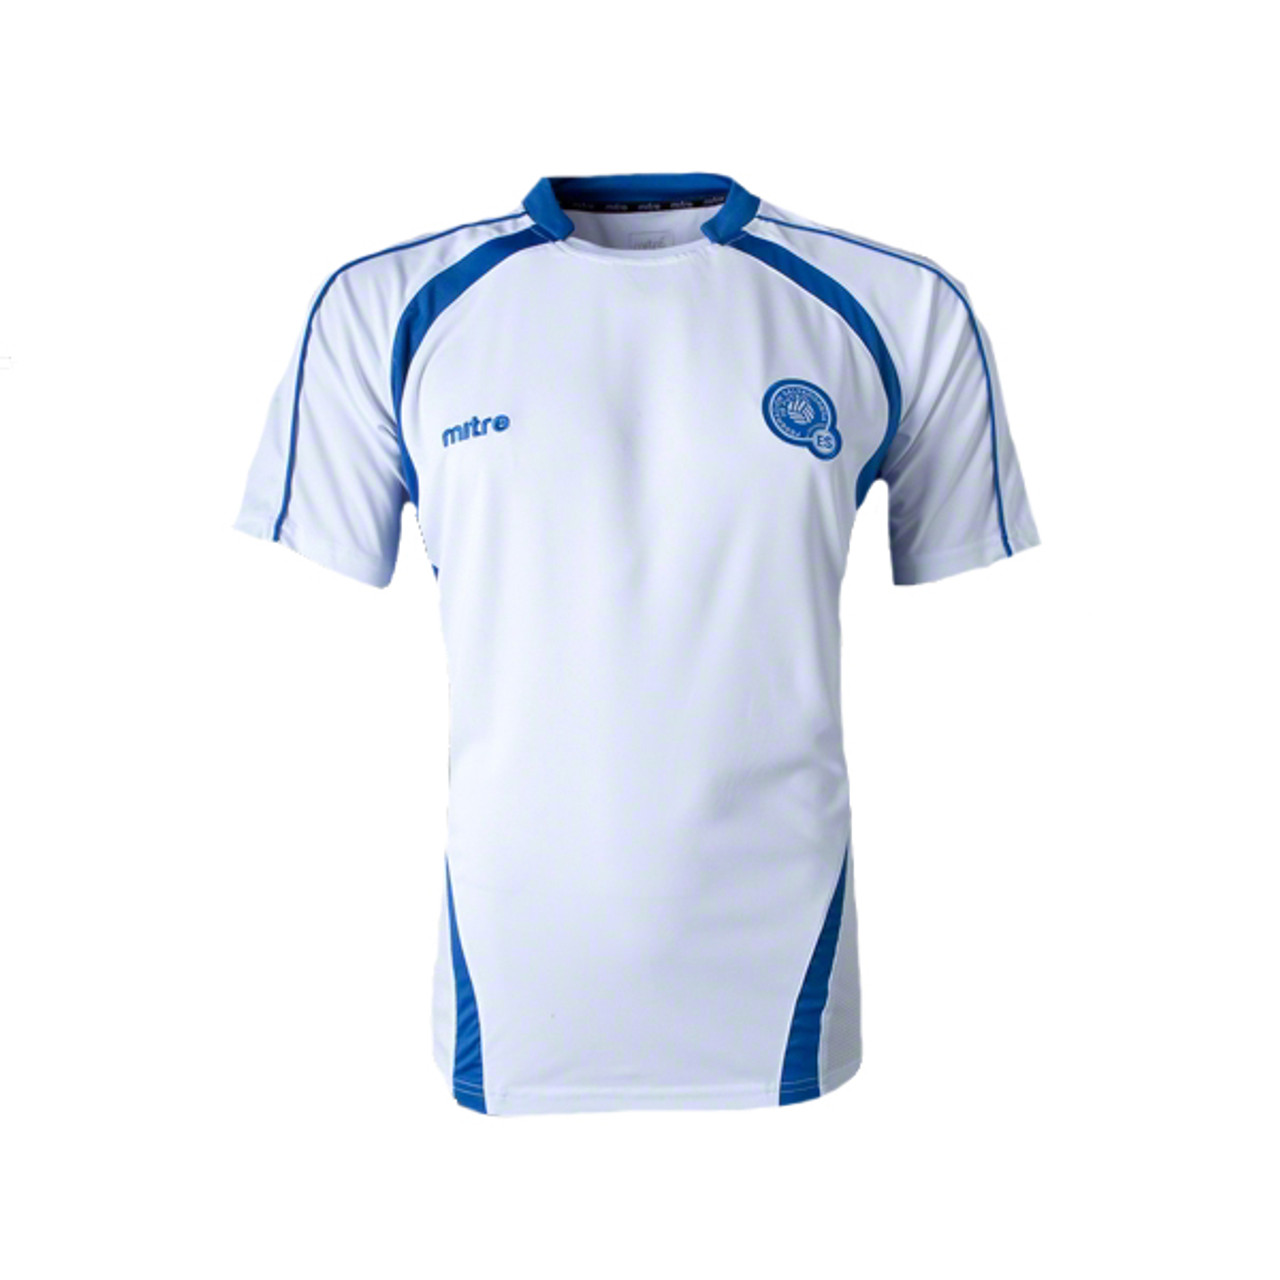 super popular c8be8 3c14e MITRE EL SALVADOR 2014 AWAY JERSEY WHITE